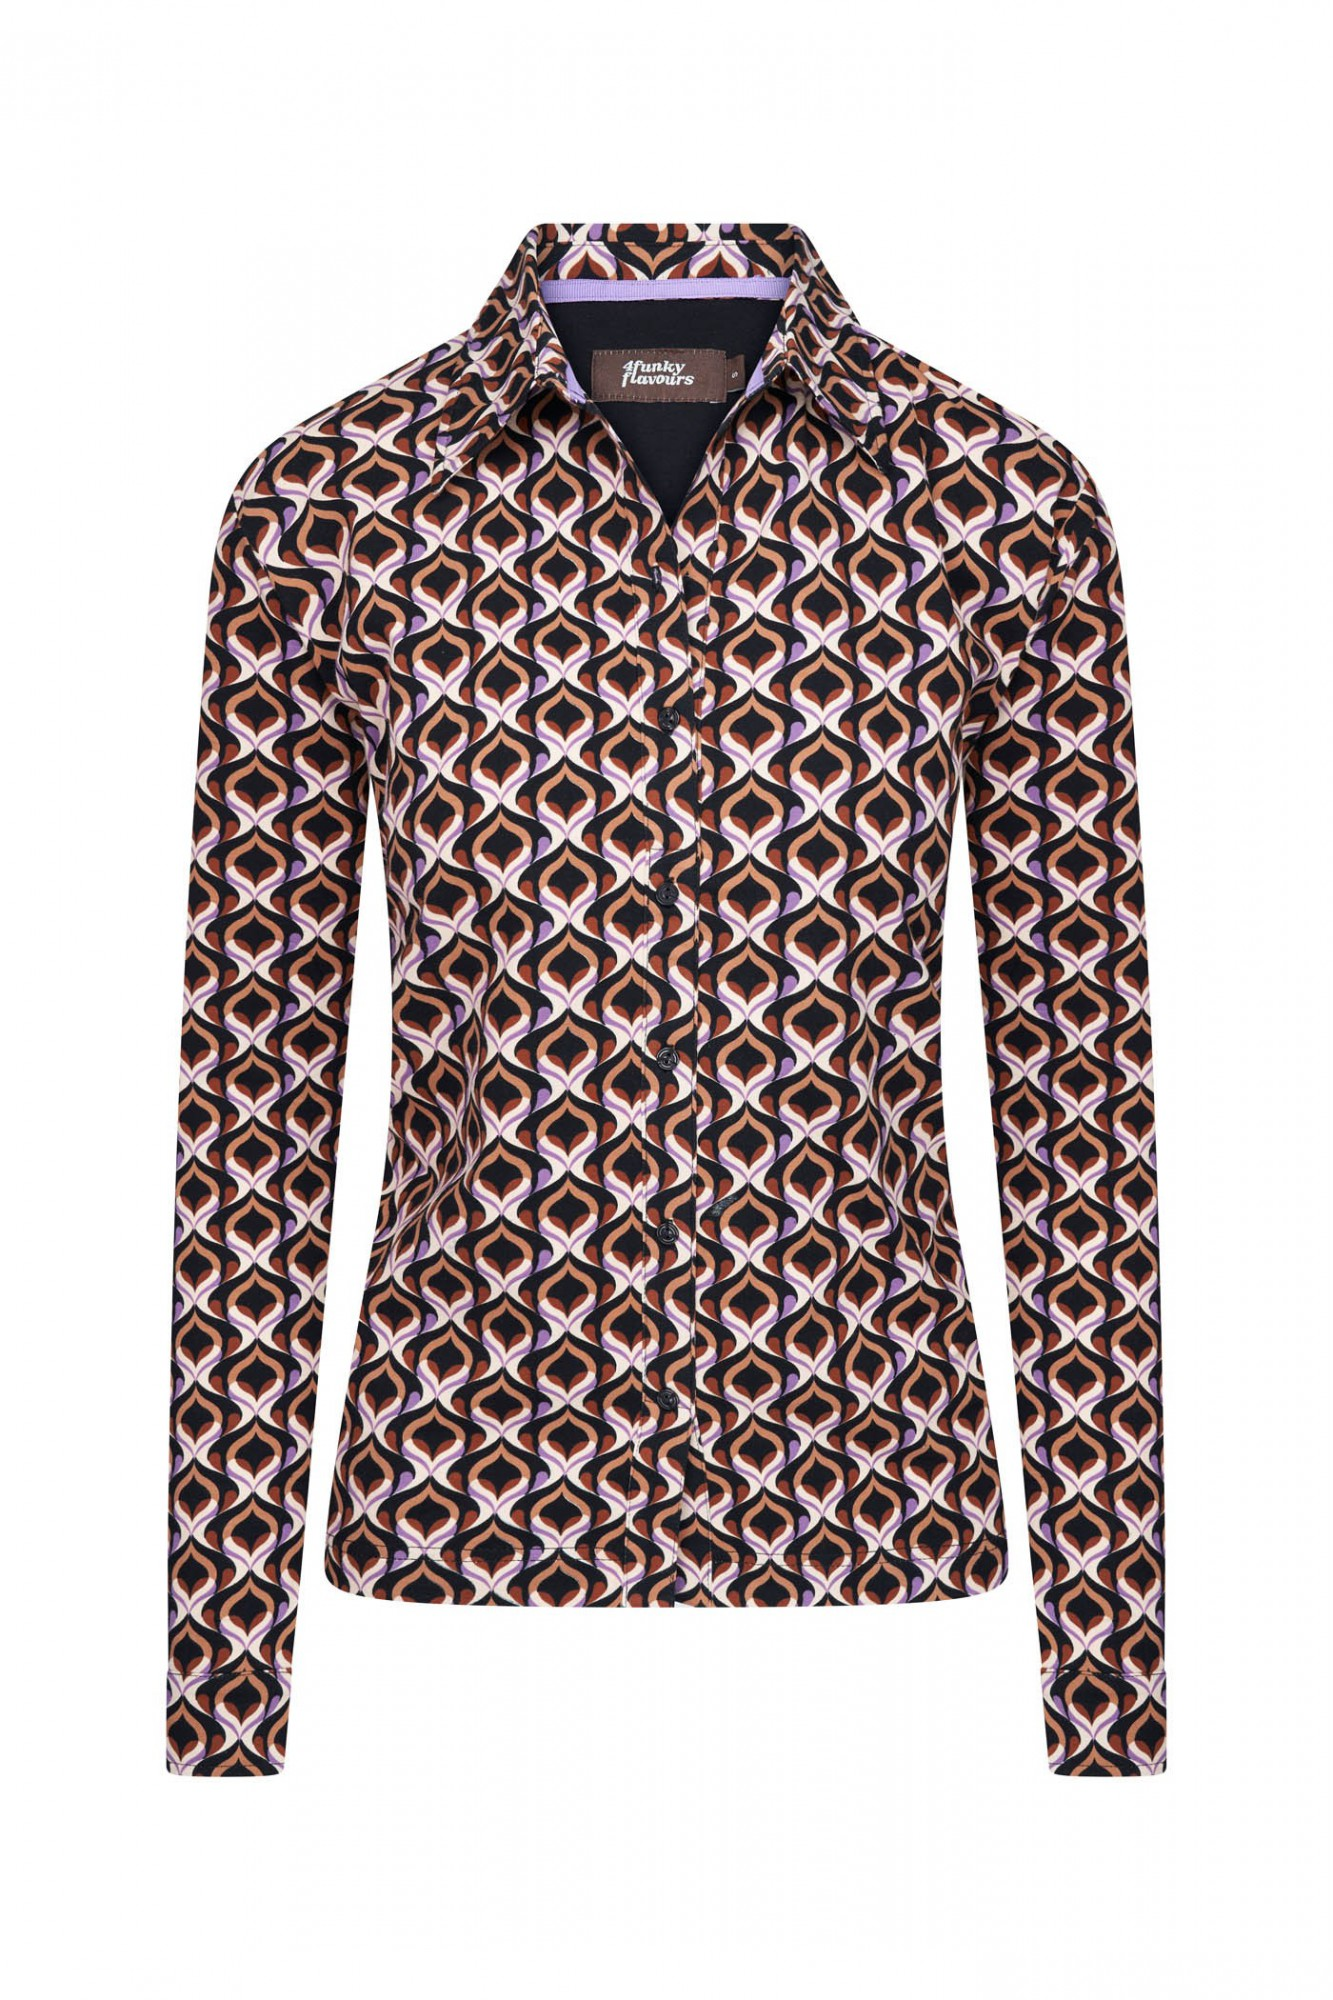 Chemise vintage 4 Funky Flavours The Melody